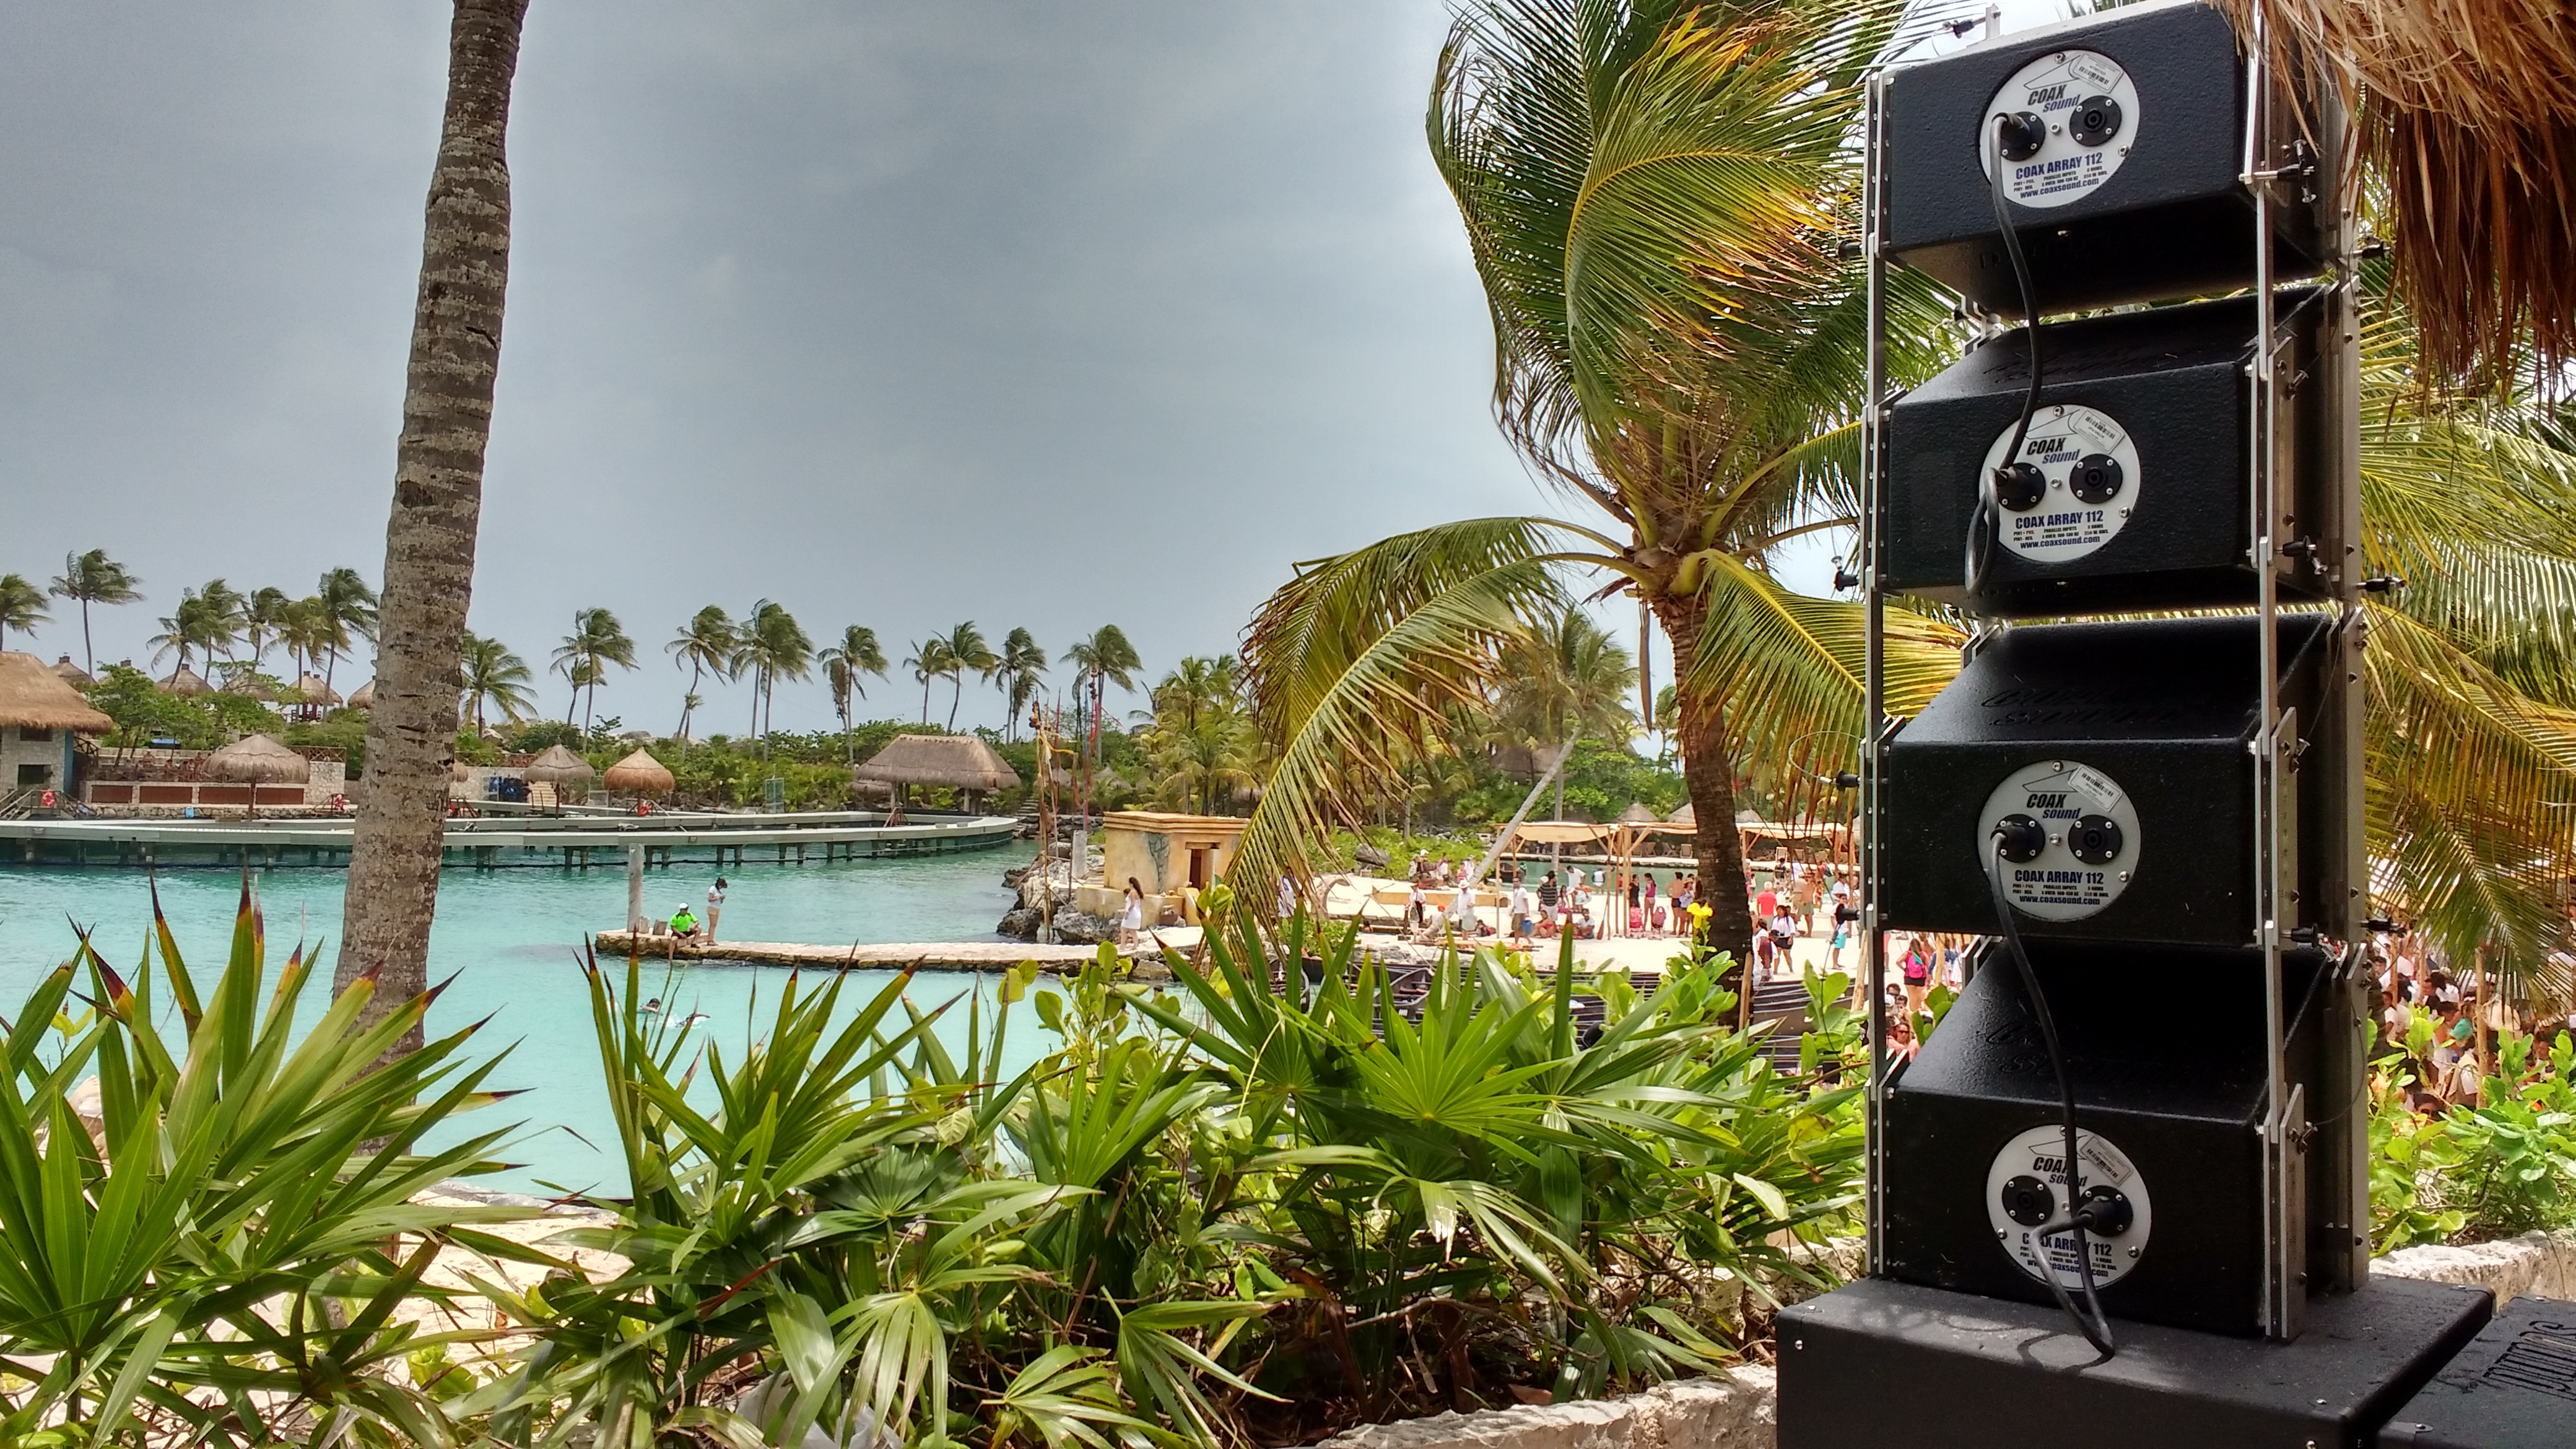 VISTA TRASERA COAX ARRAY 112 EN XCARET